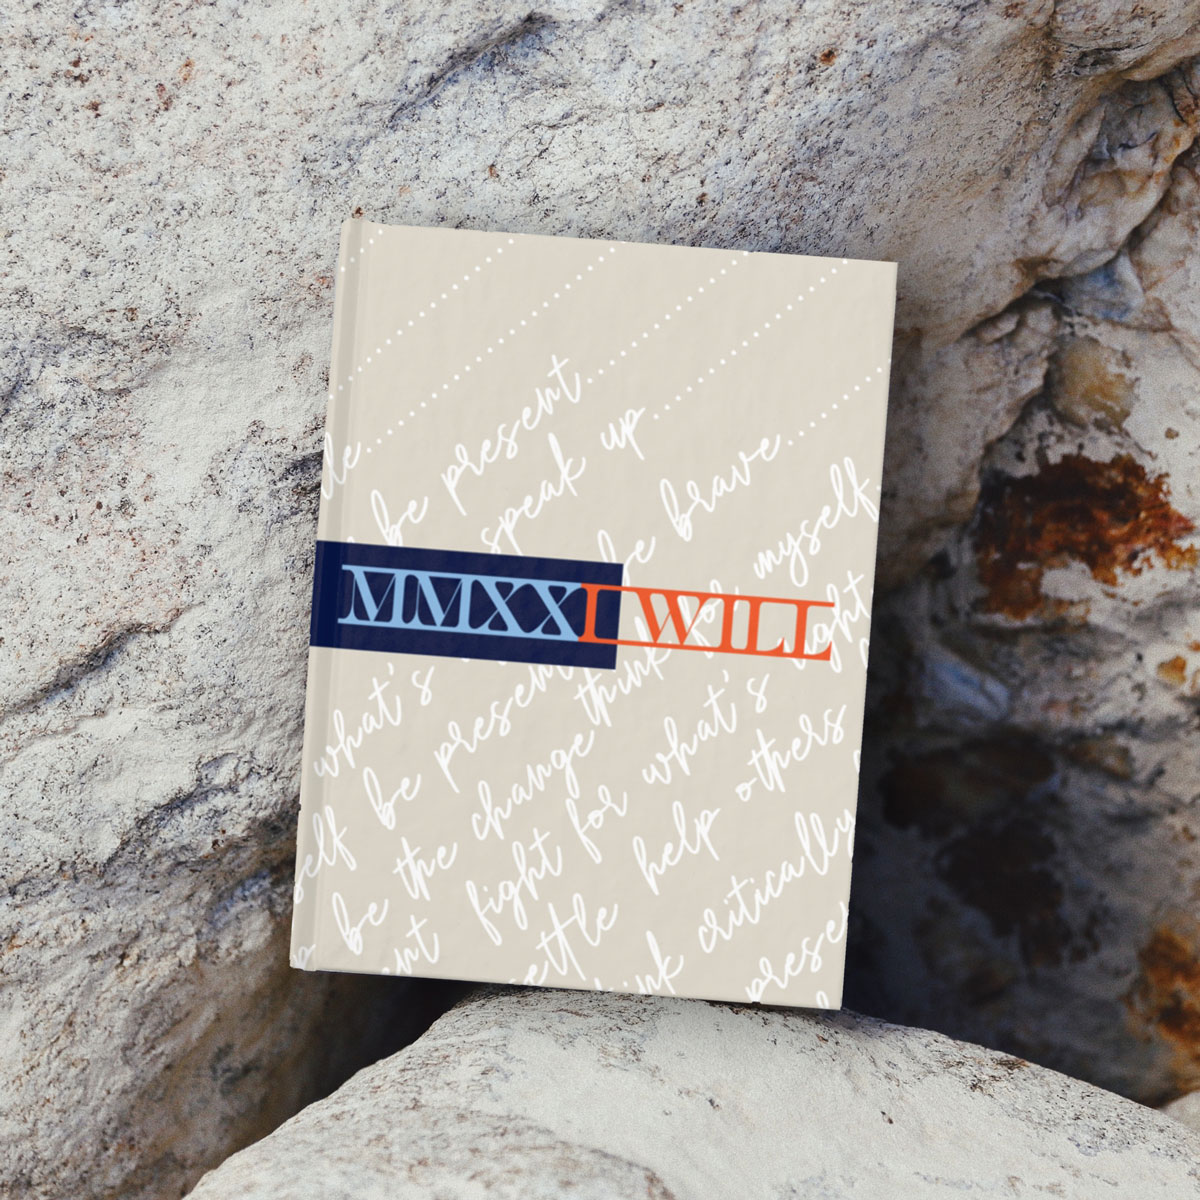 2021 (MMXXI): I Will – Blank or Lined Notebook